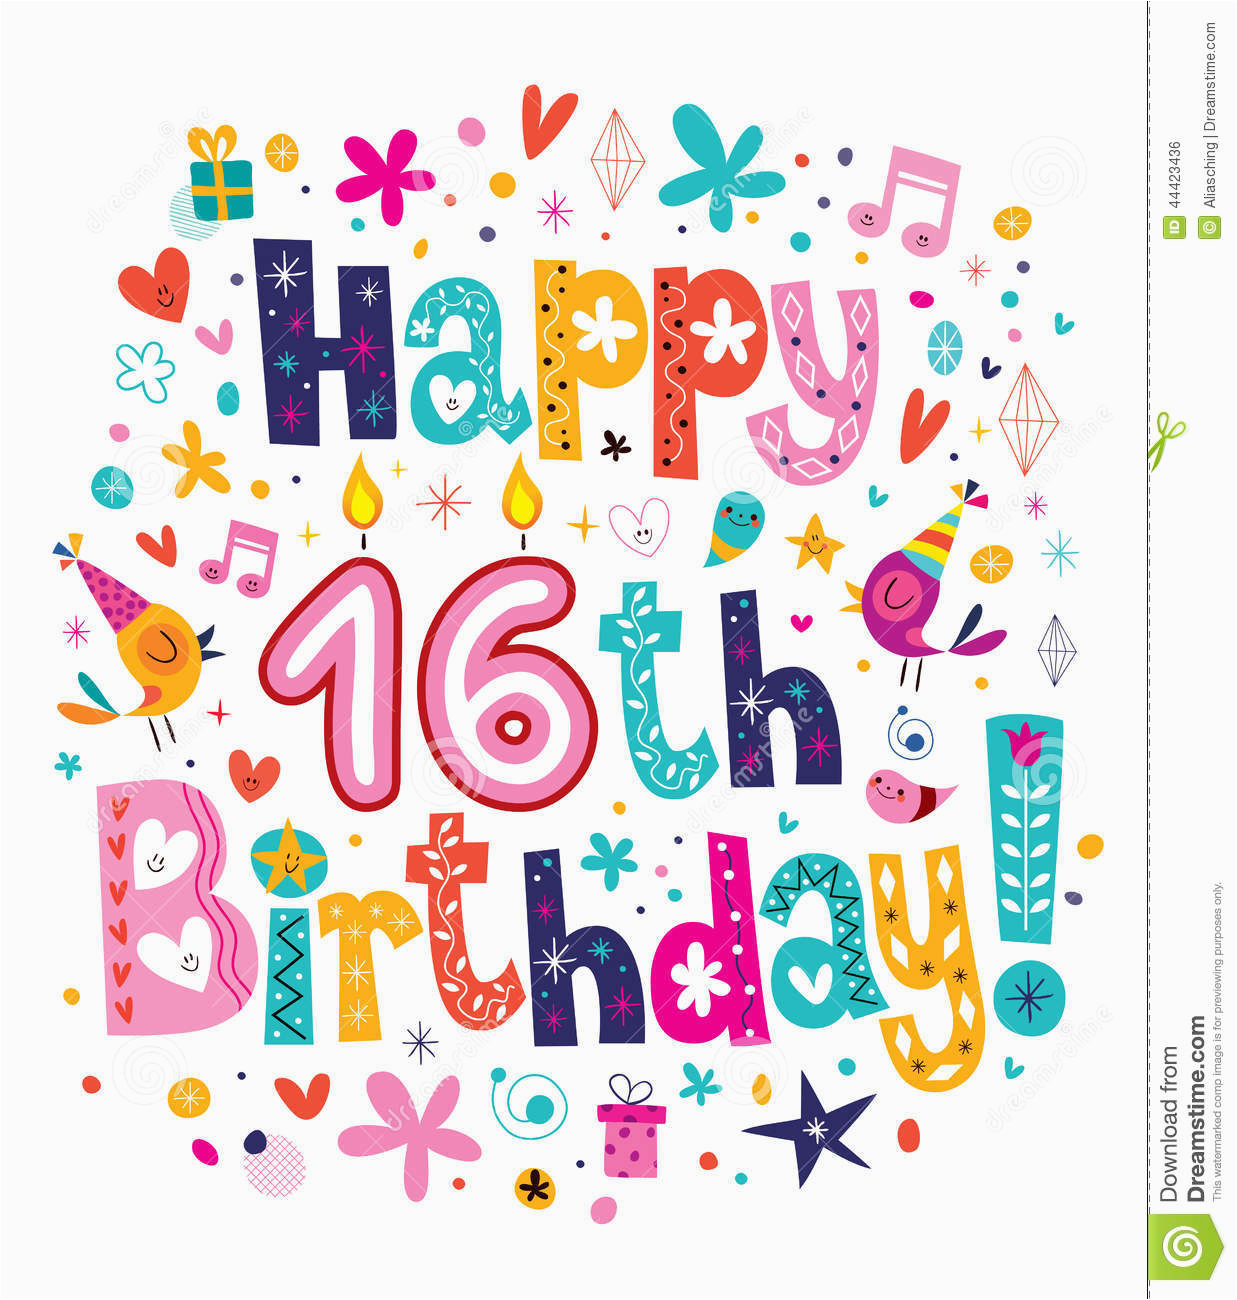 16th birthday quotes funny